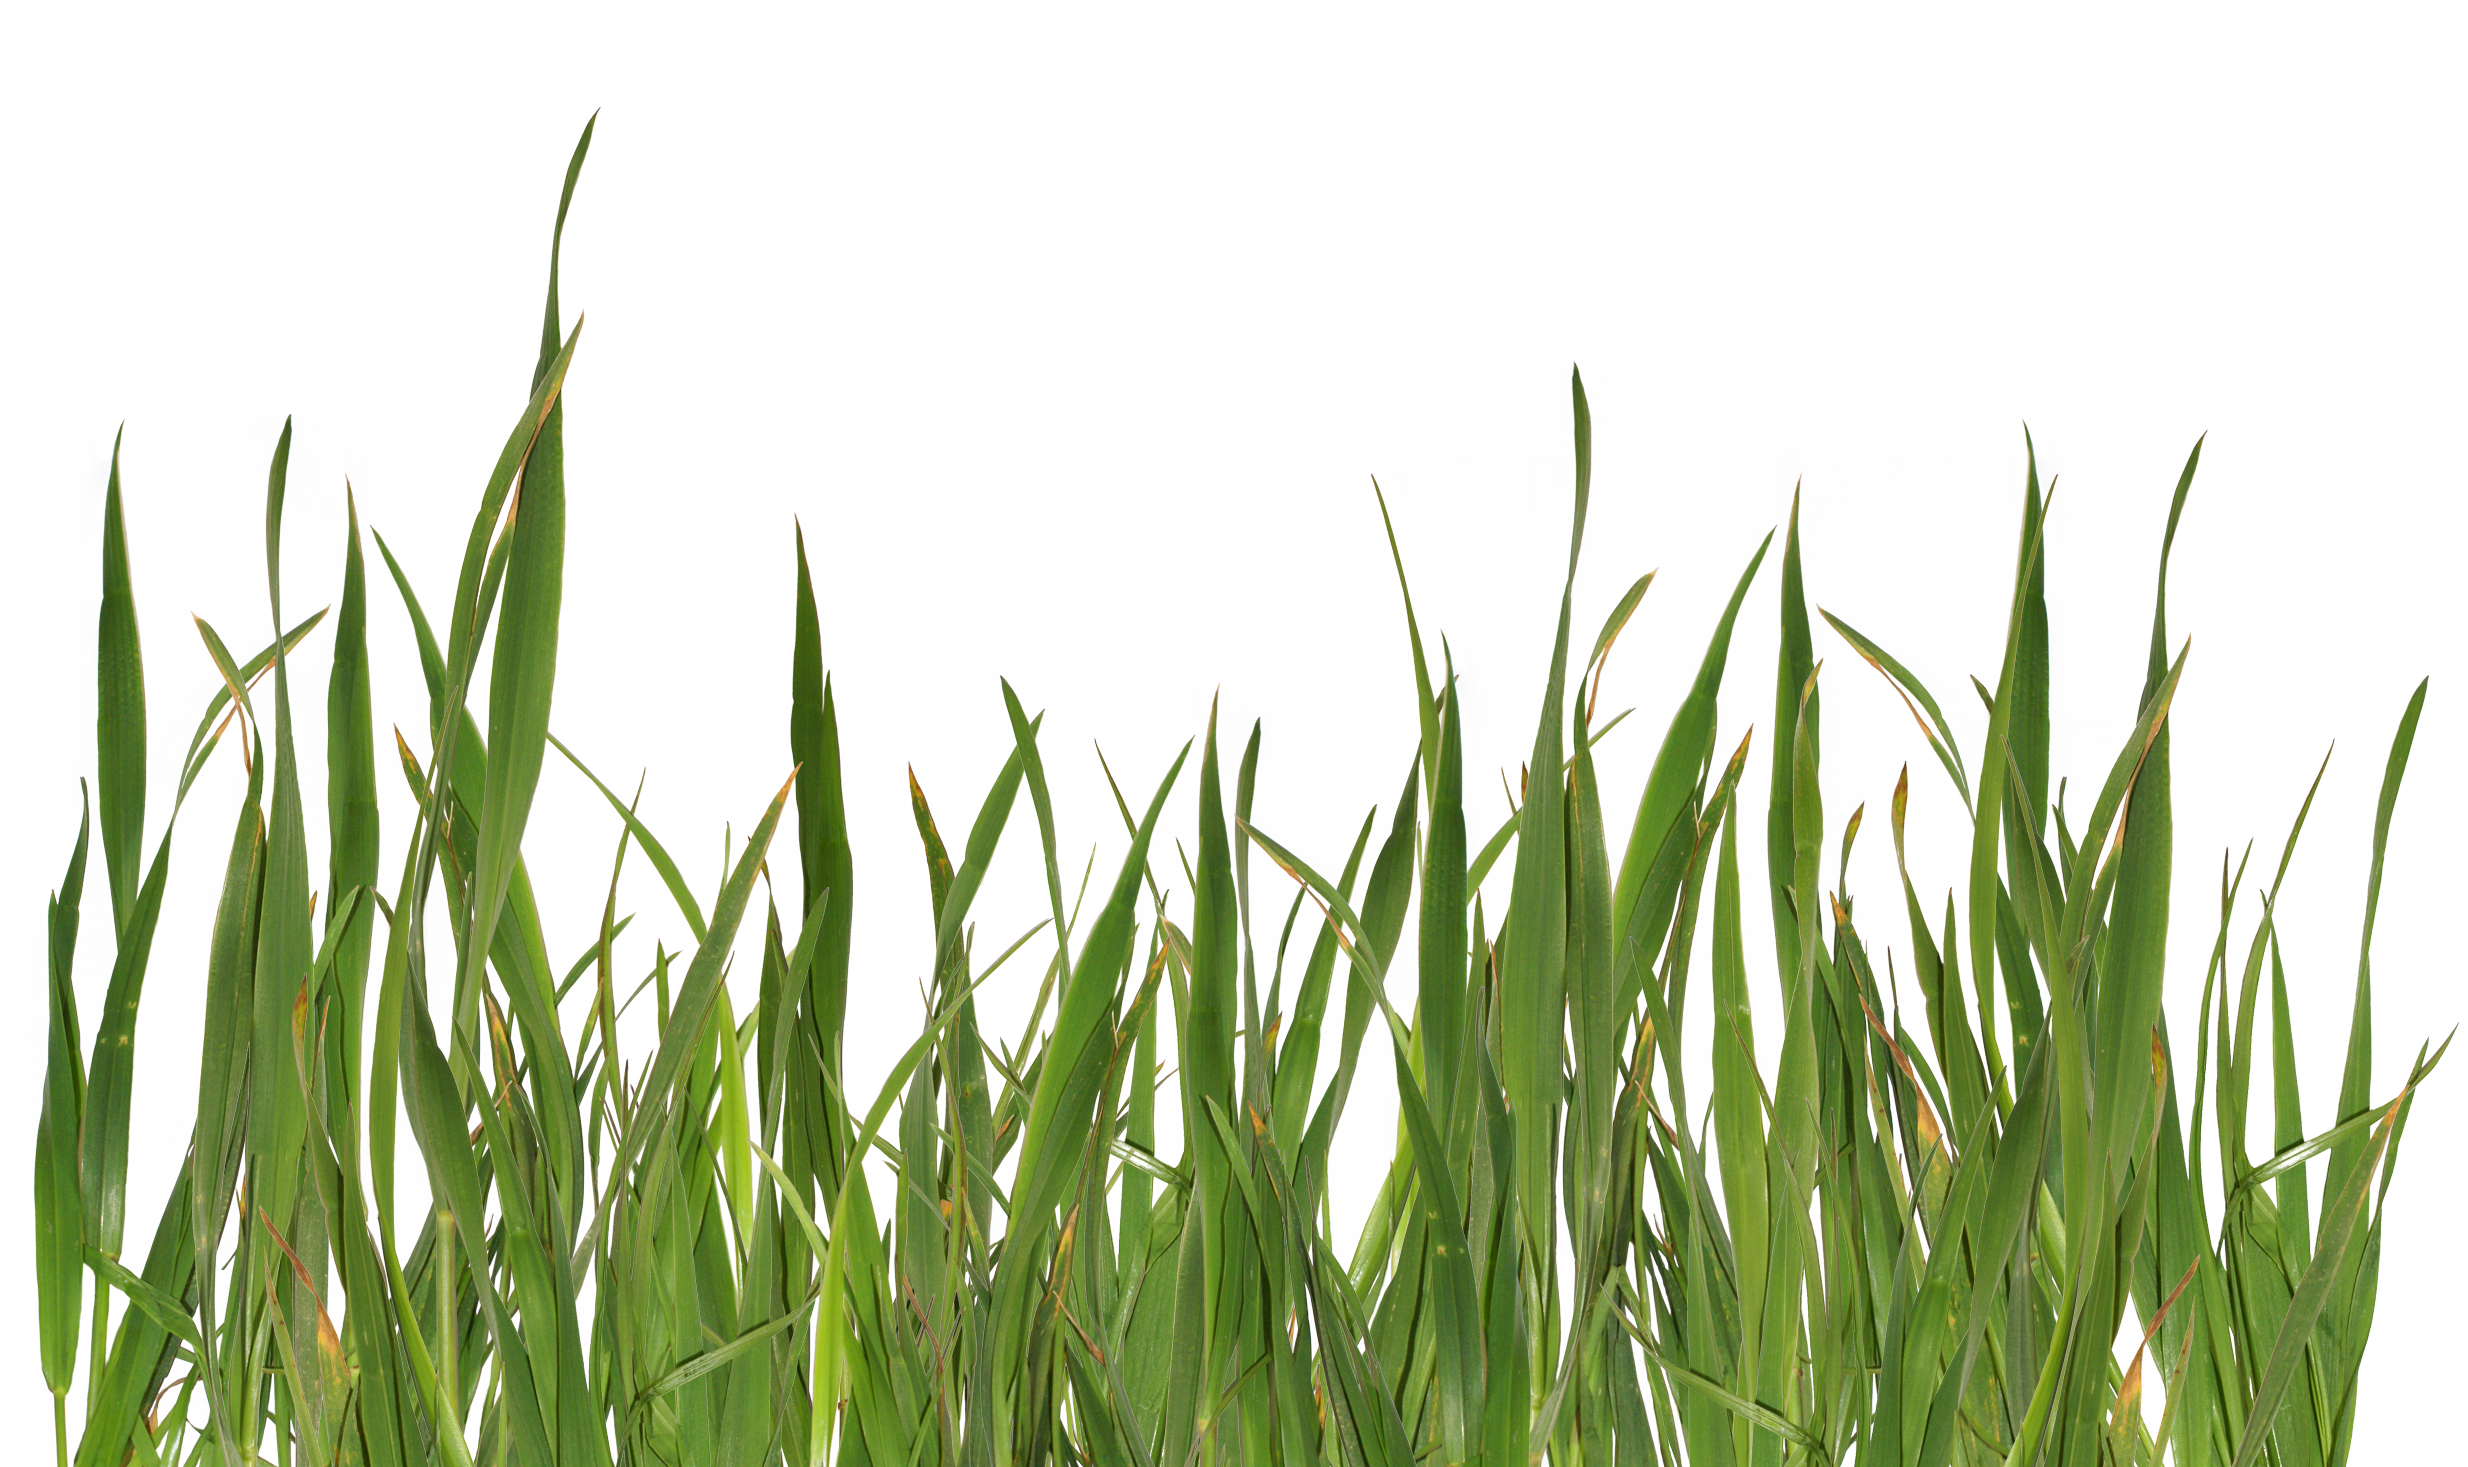 grass png image, green picture - Grasses PNG HD